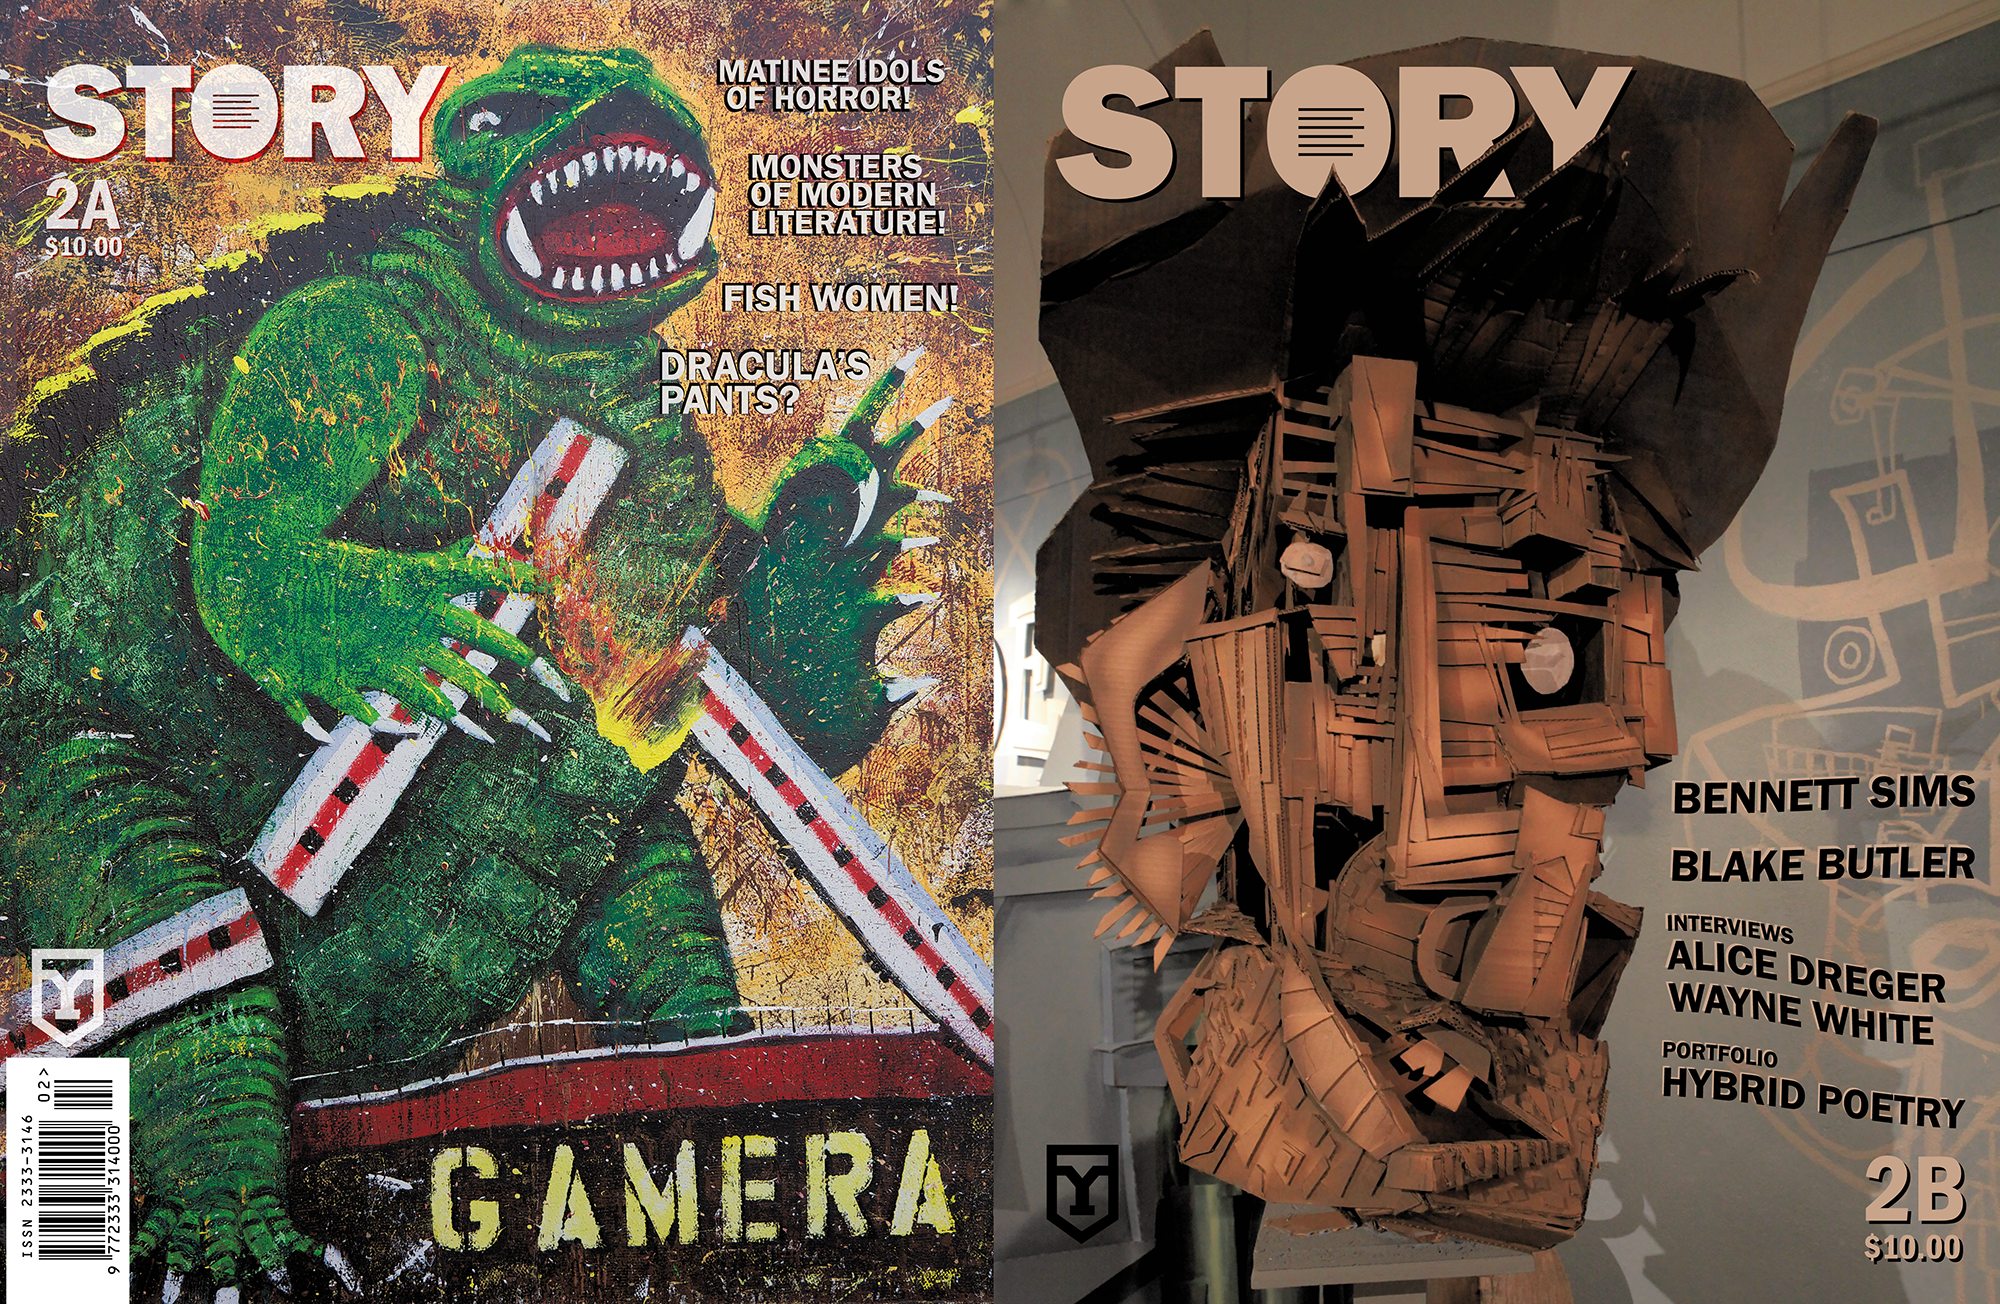 Story 2 covers